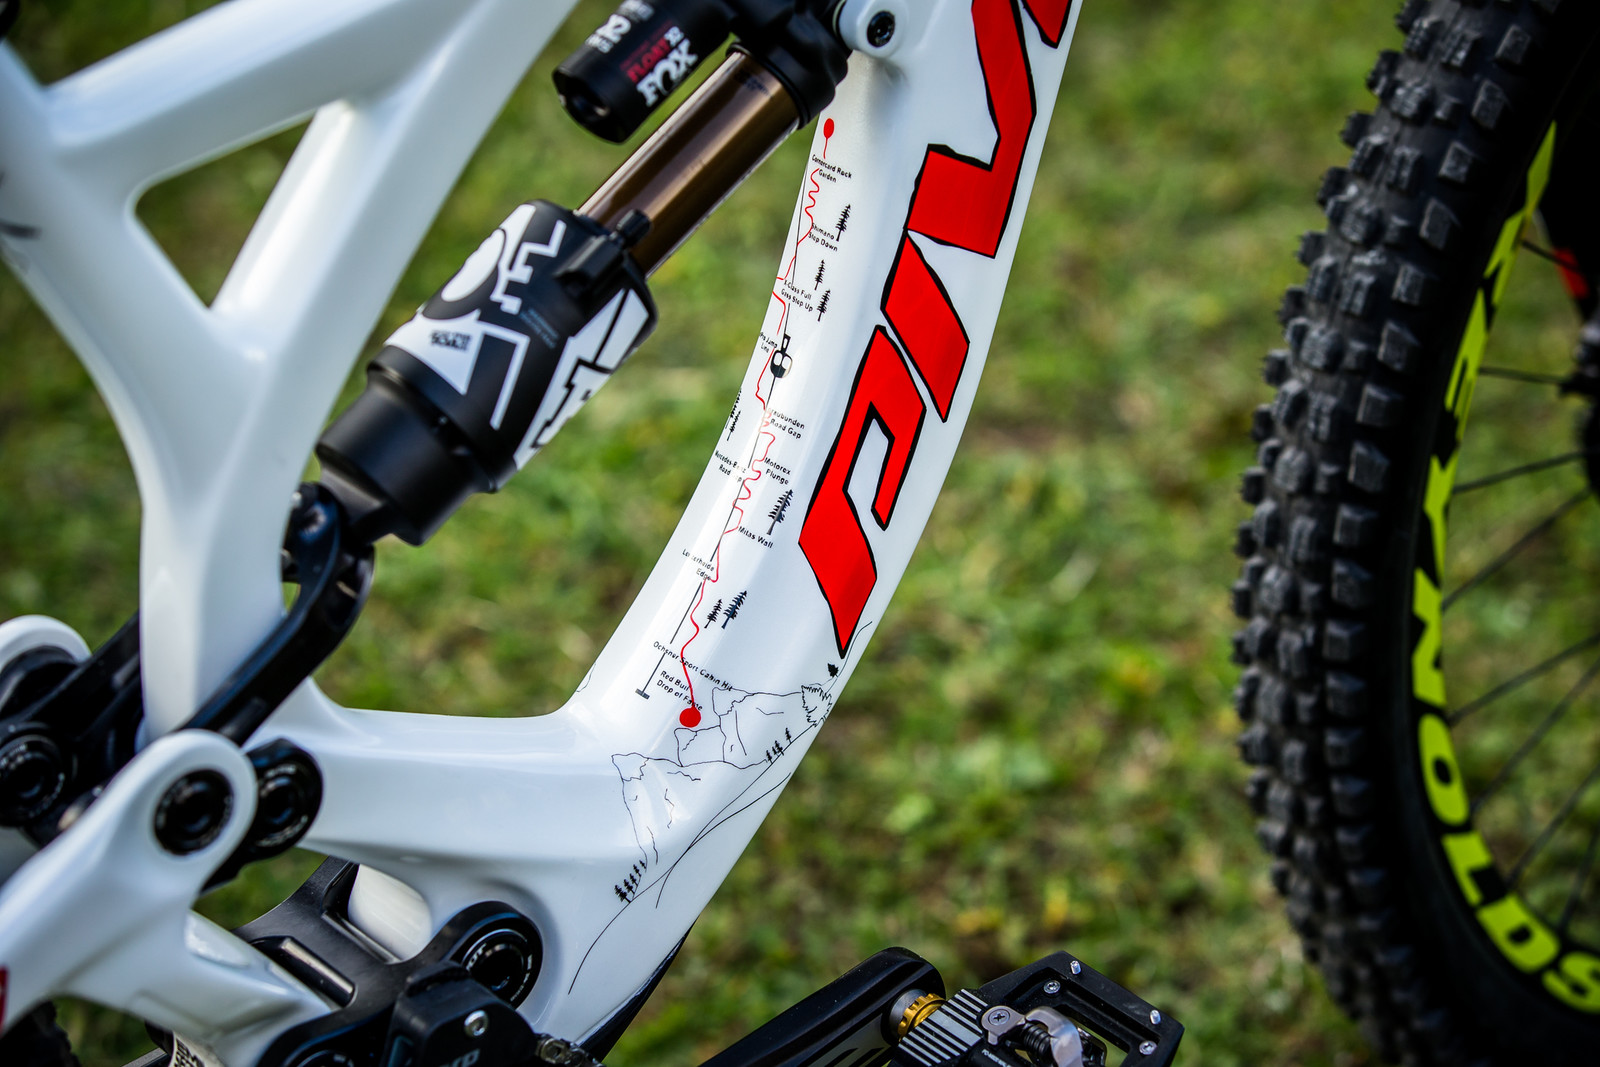 Super Rad Concept! - WORLD CHAMPS BIKE - Emilie Siegenthaler's Pivot Phoenix - Mountain Biking Pictures - Vital MTB